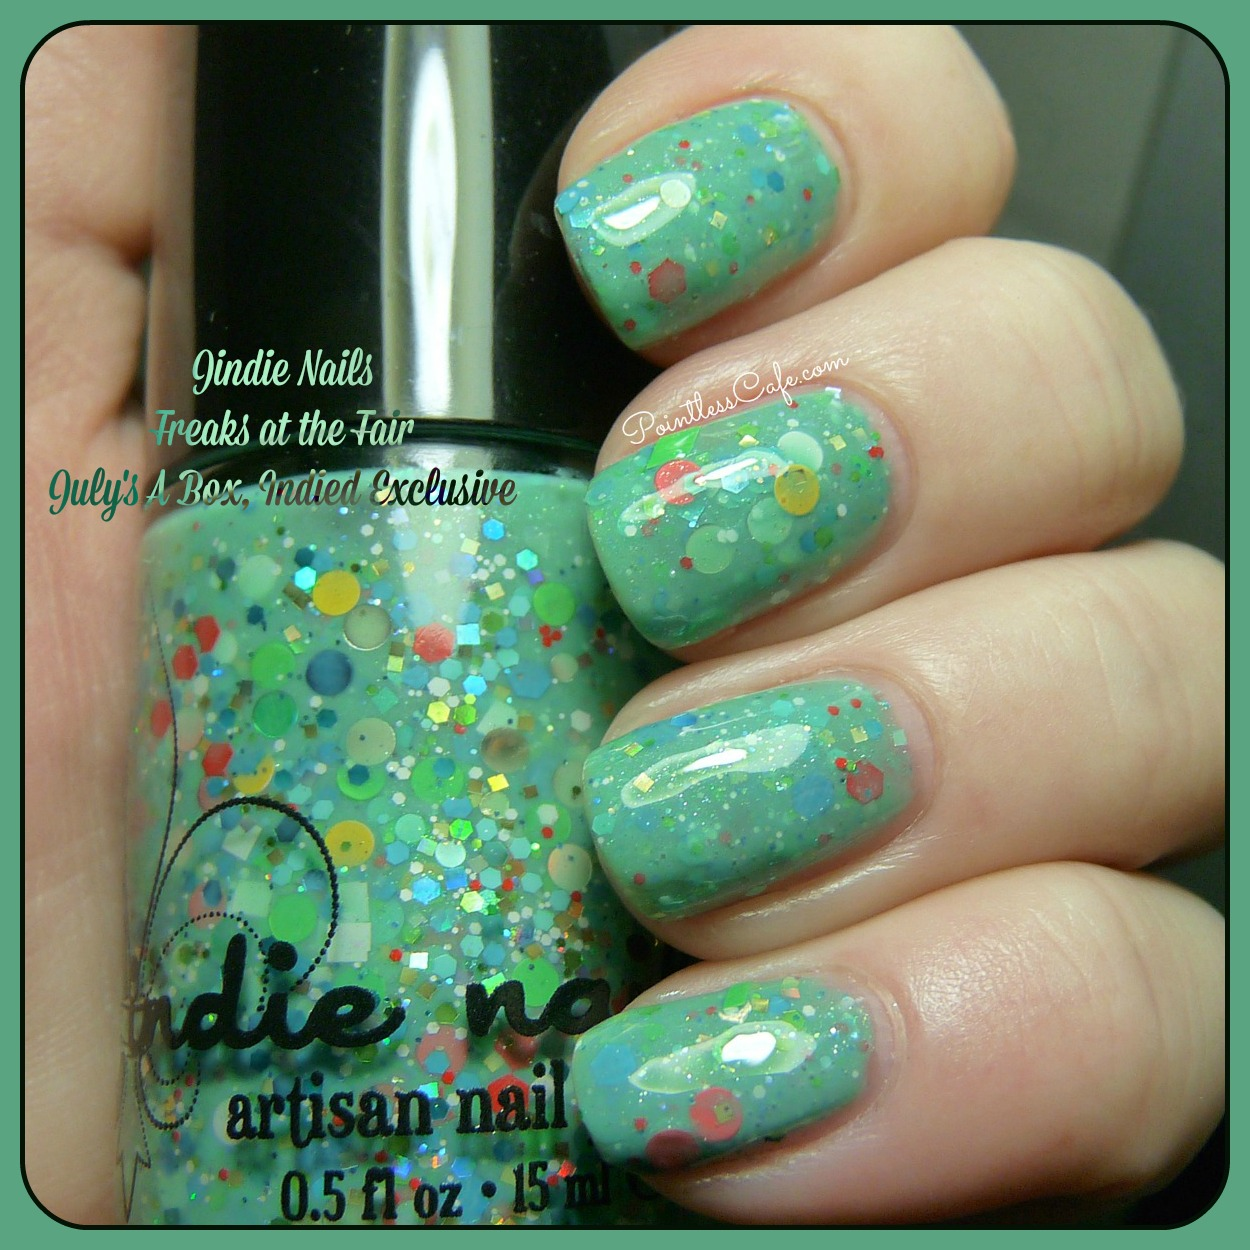 Jindie Nails Freaks at the Fair: Exclusive for July\'s A Box, Indied ...